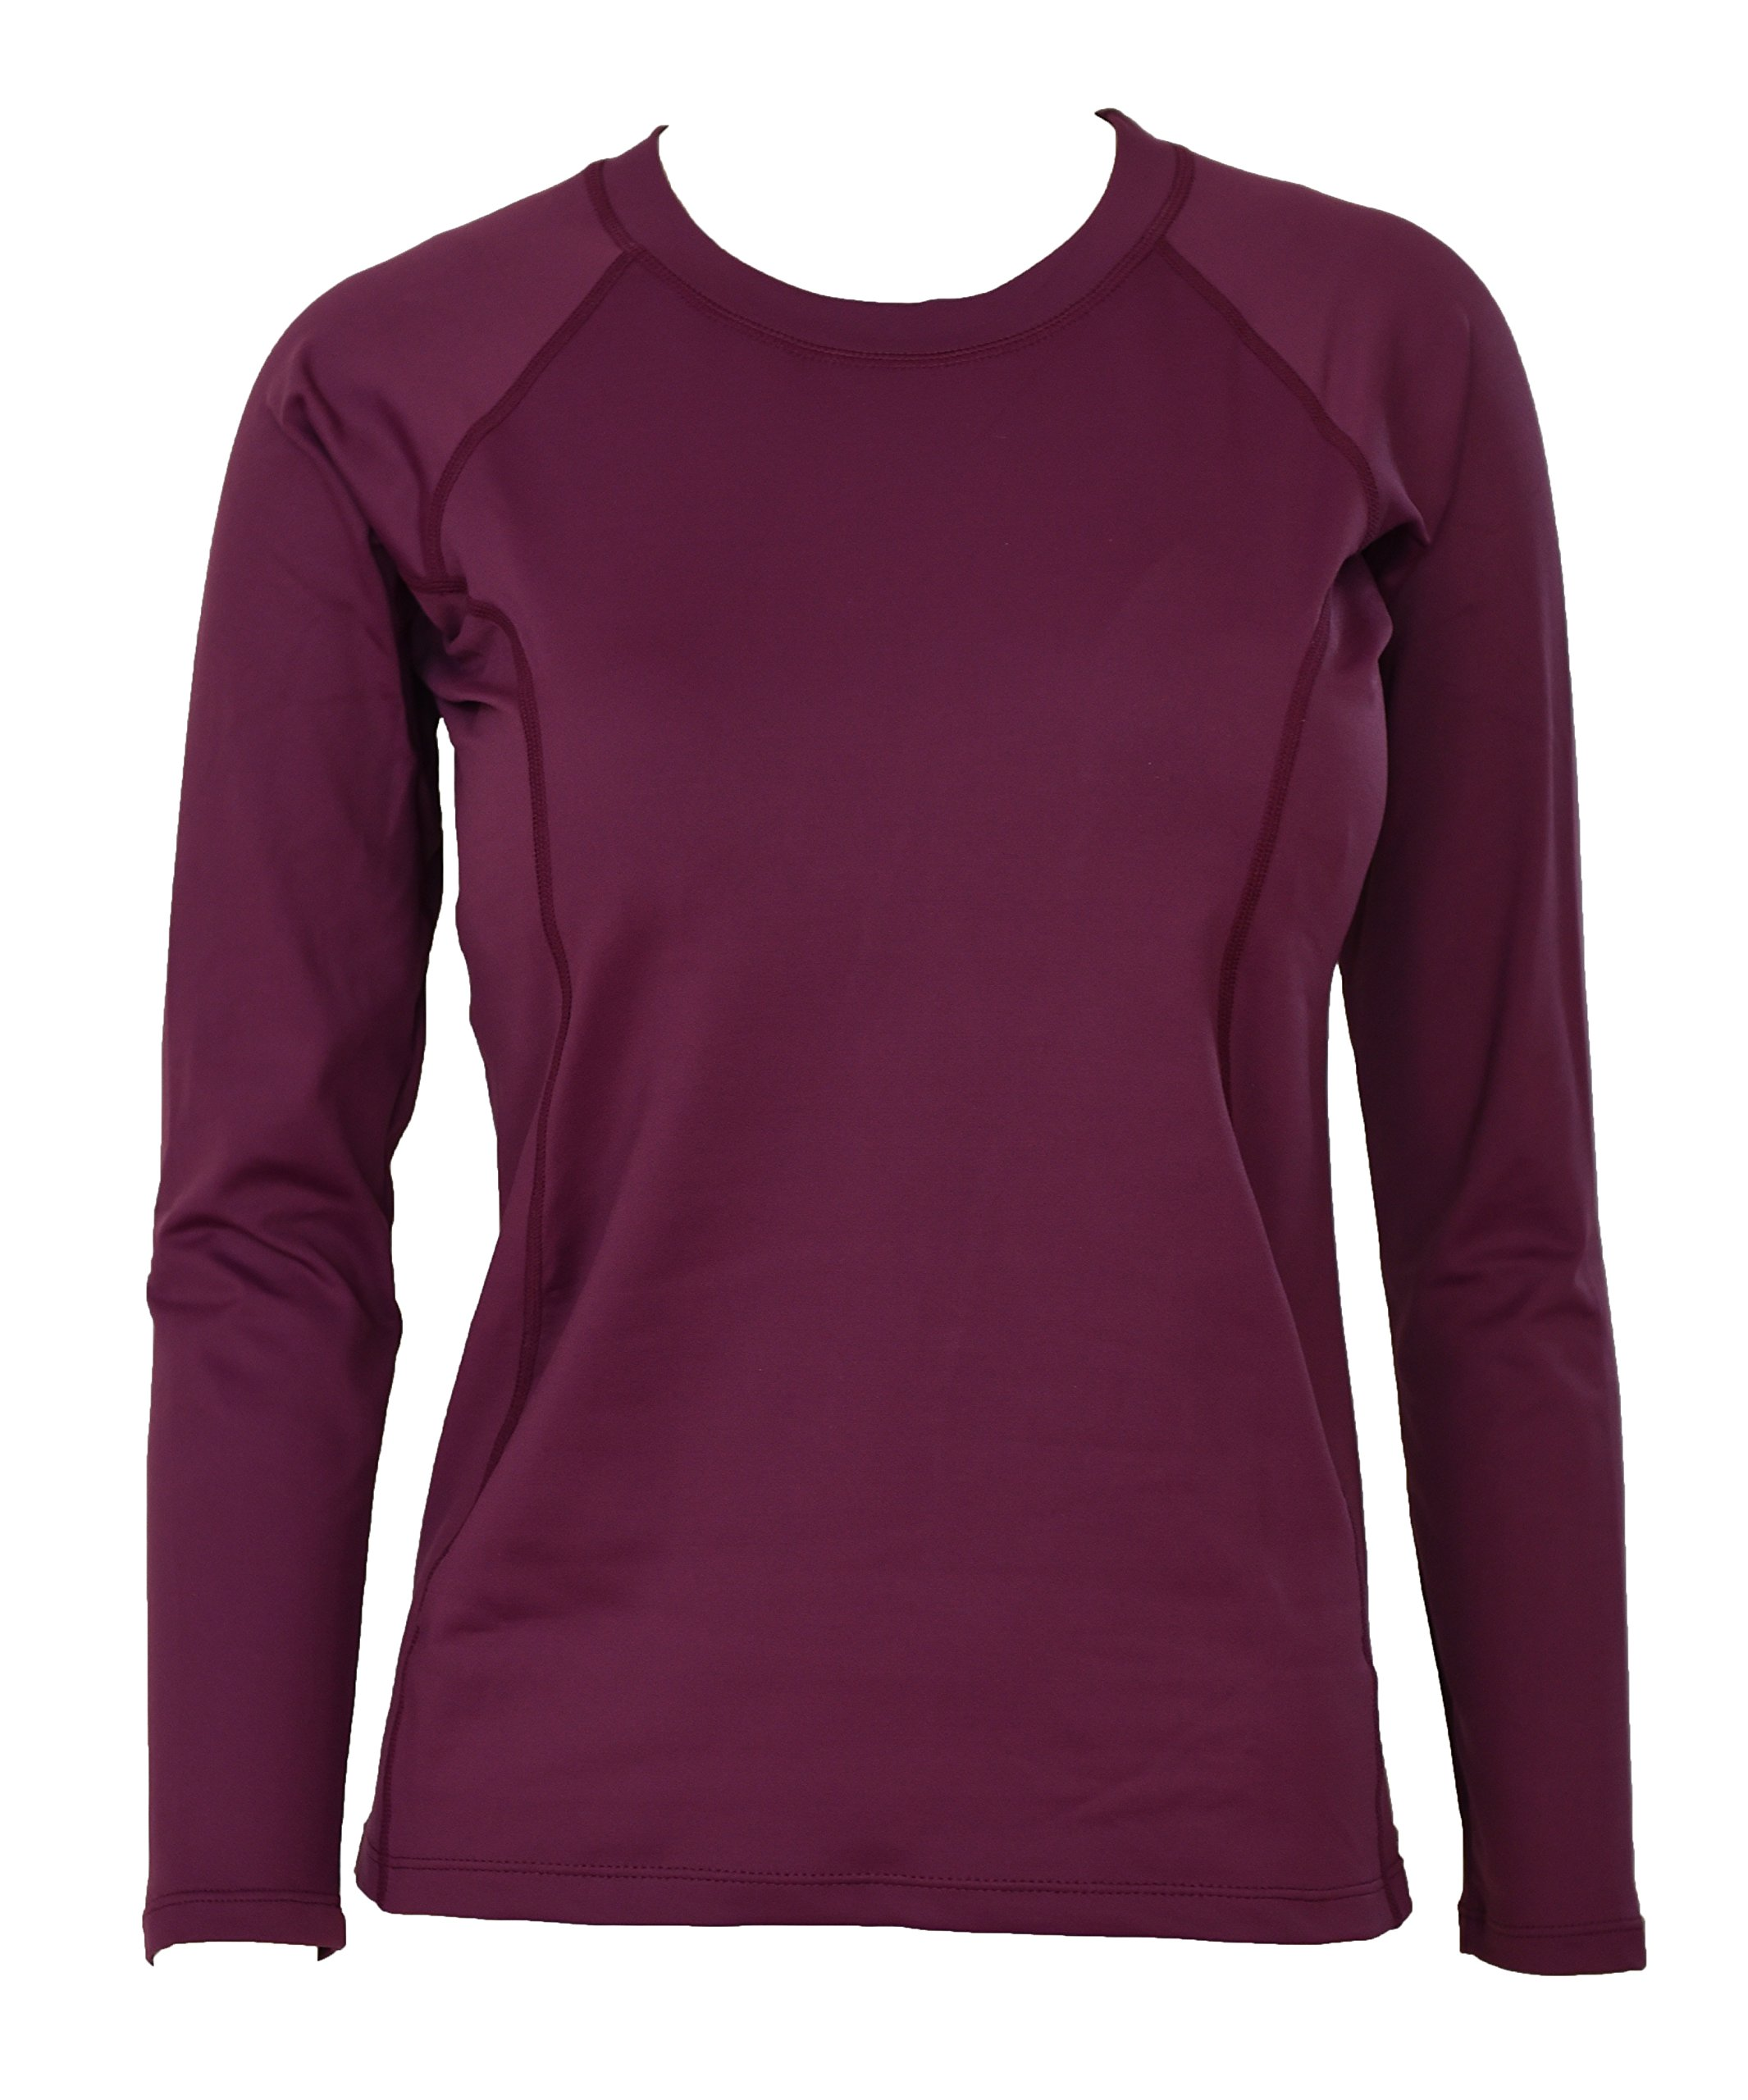 Private Island Hawaii UV Women Rash Guard Swim Long Sleeve Yoga Active Workout (XL, DW-RGT) Dark Wine by Private Island